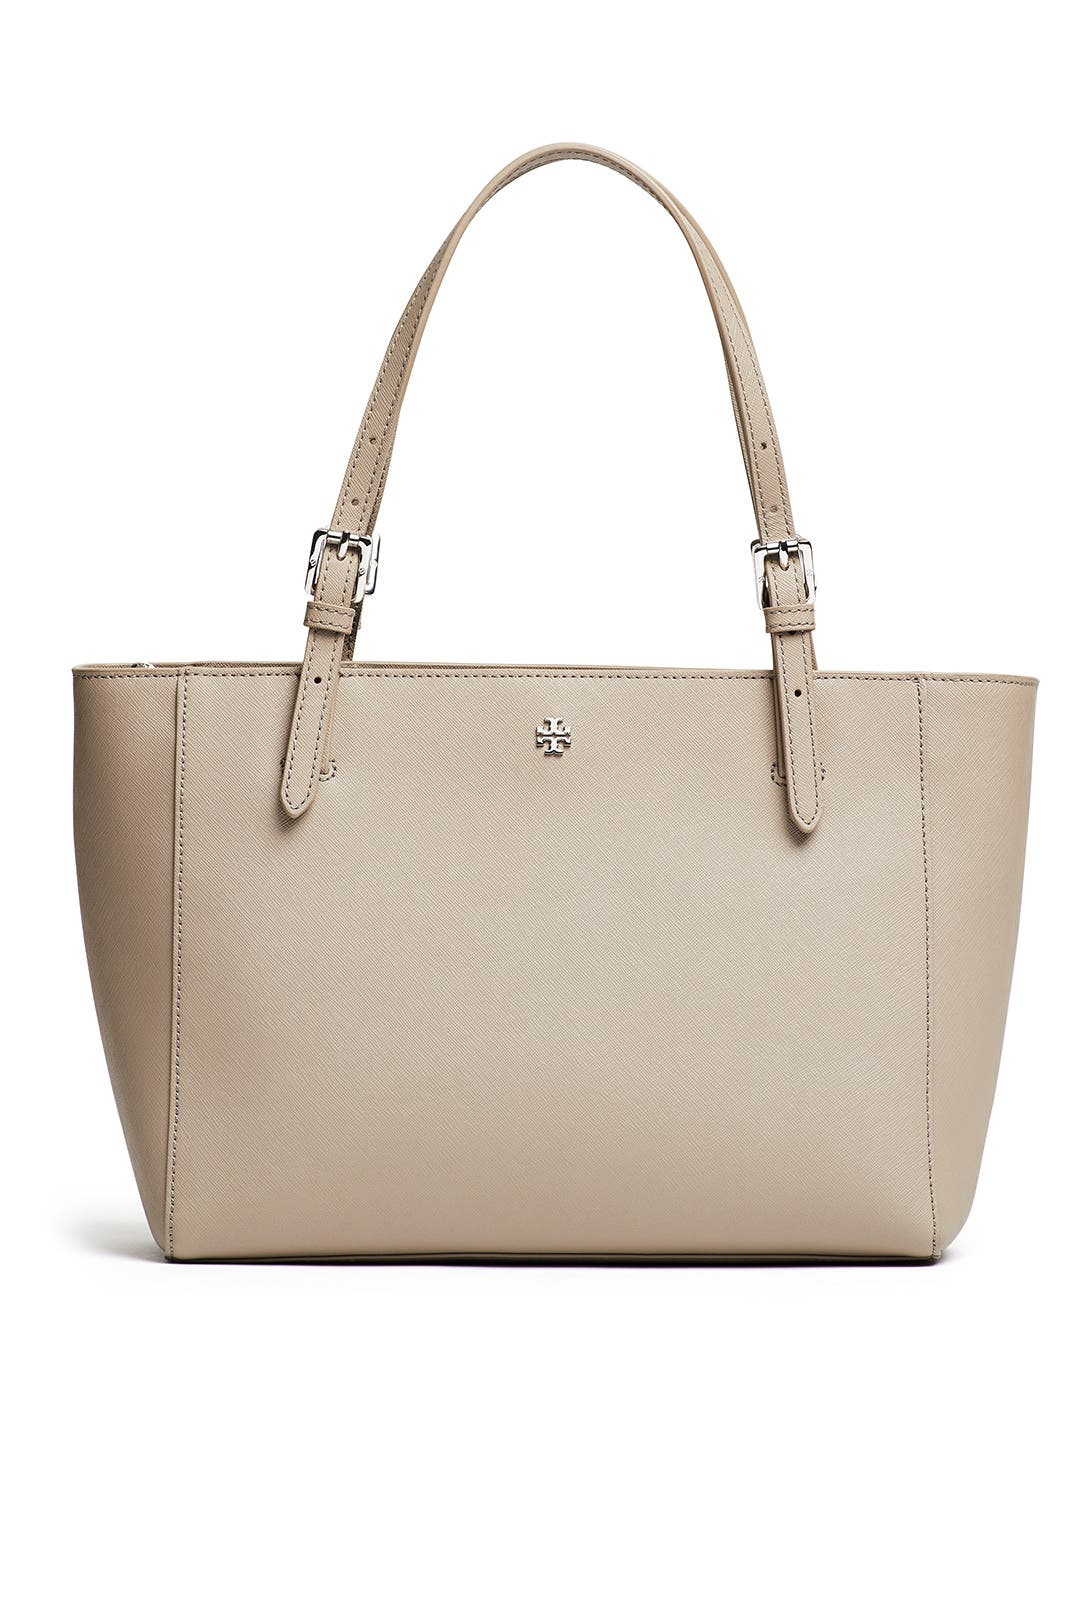 Grey York Buckle Tote By Tory Burch Accessories For 35 Rent The Small Black Runway